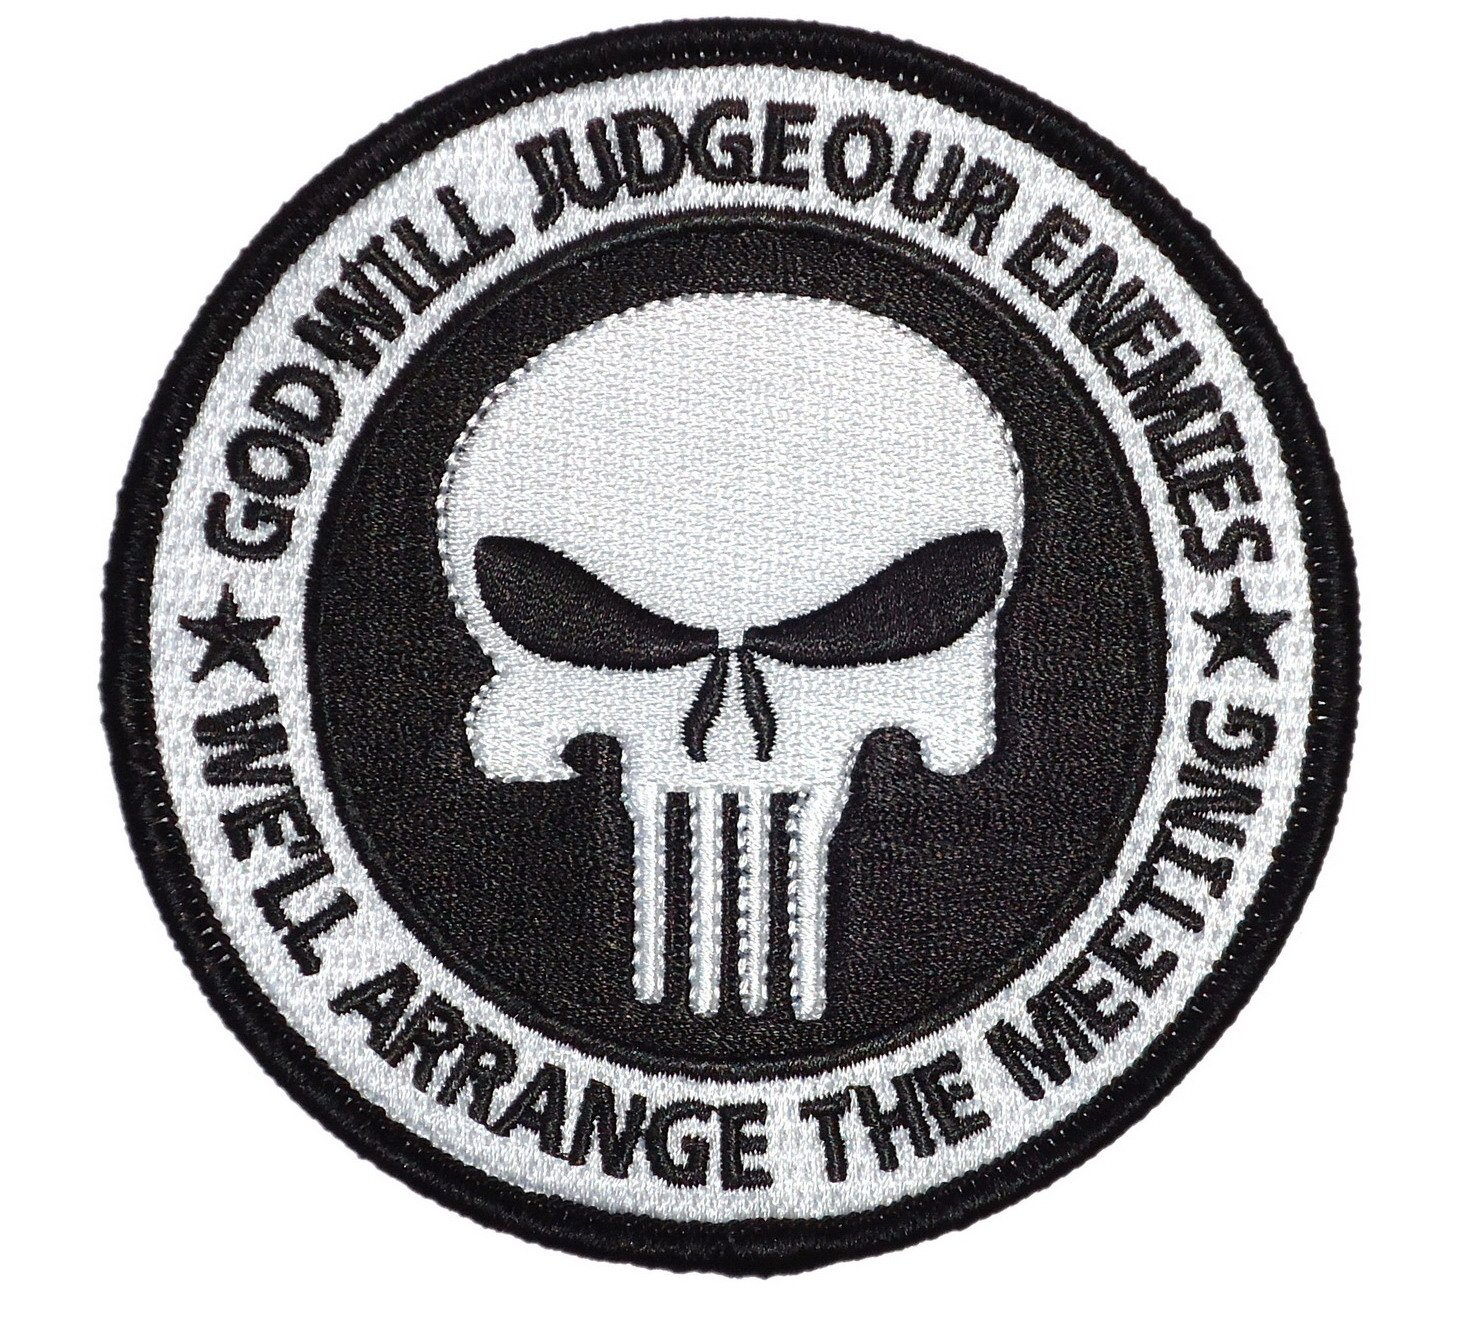 Seal Team 3 Cadillac Logo Meaning